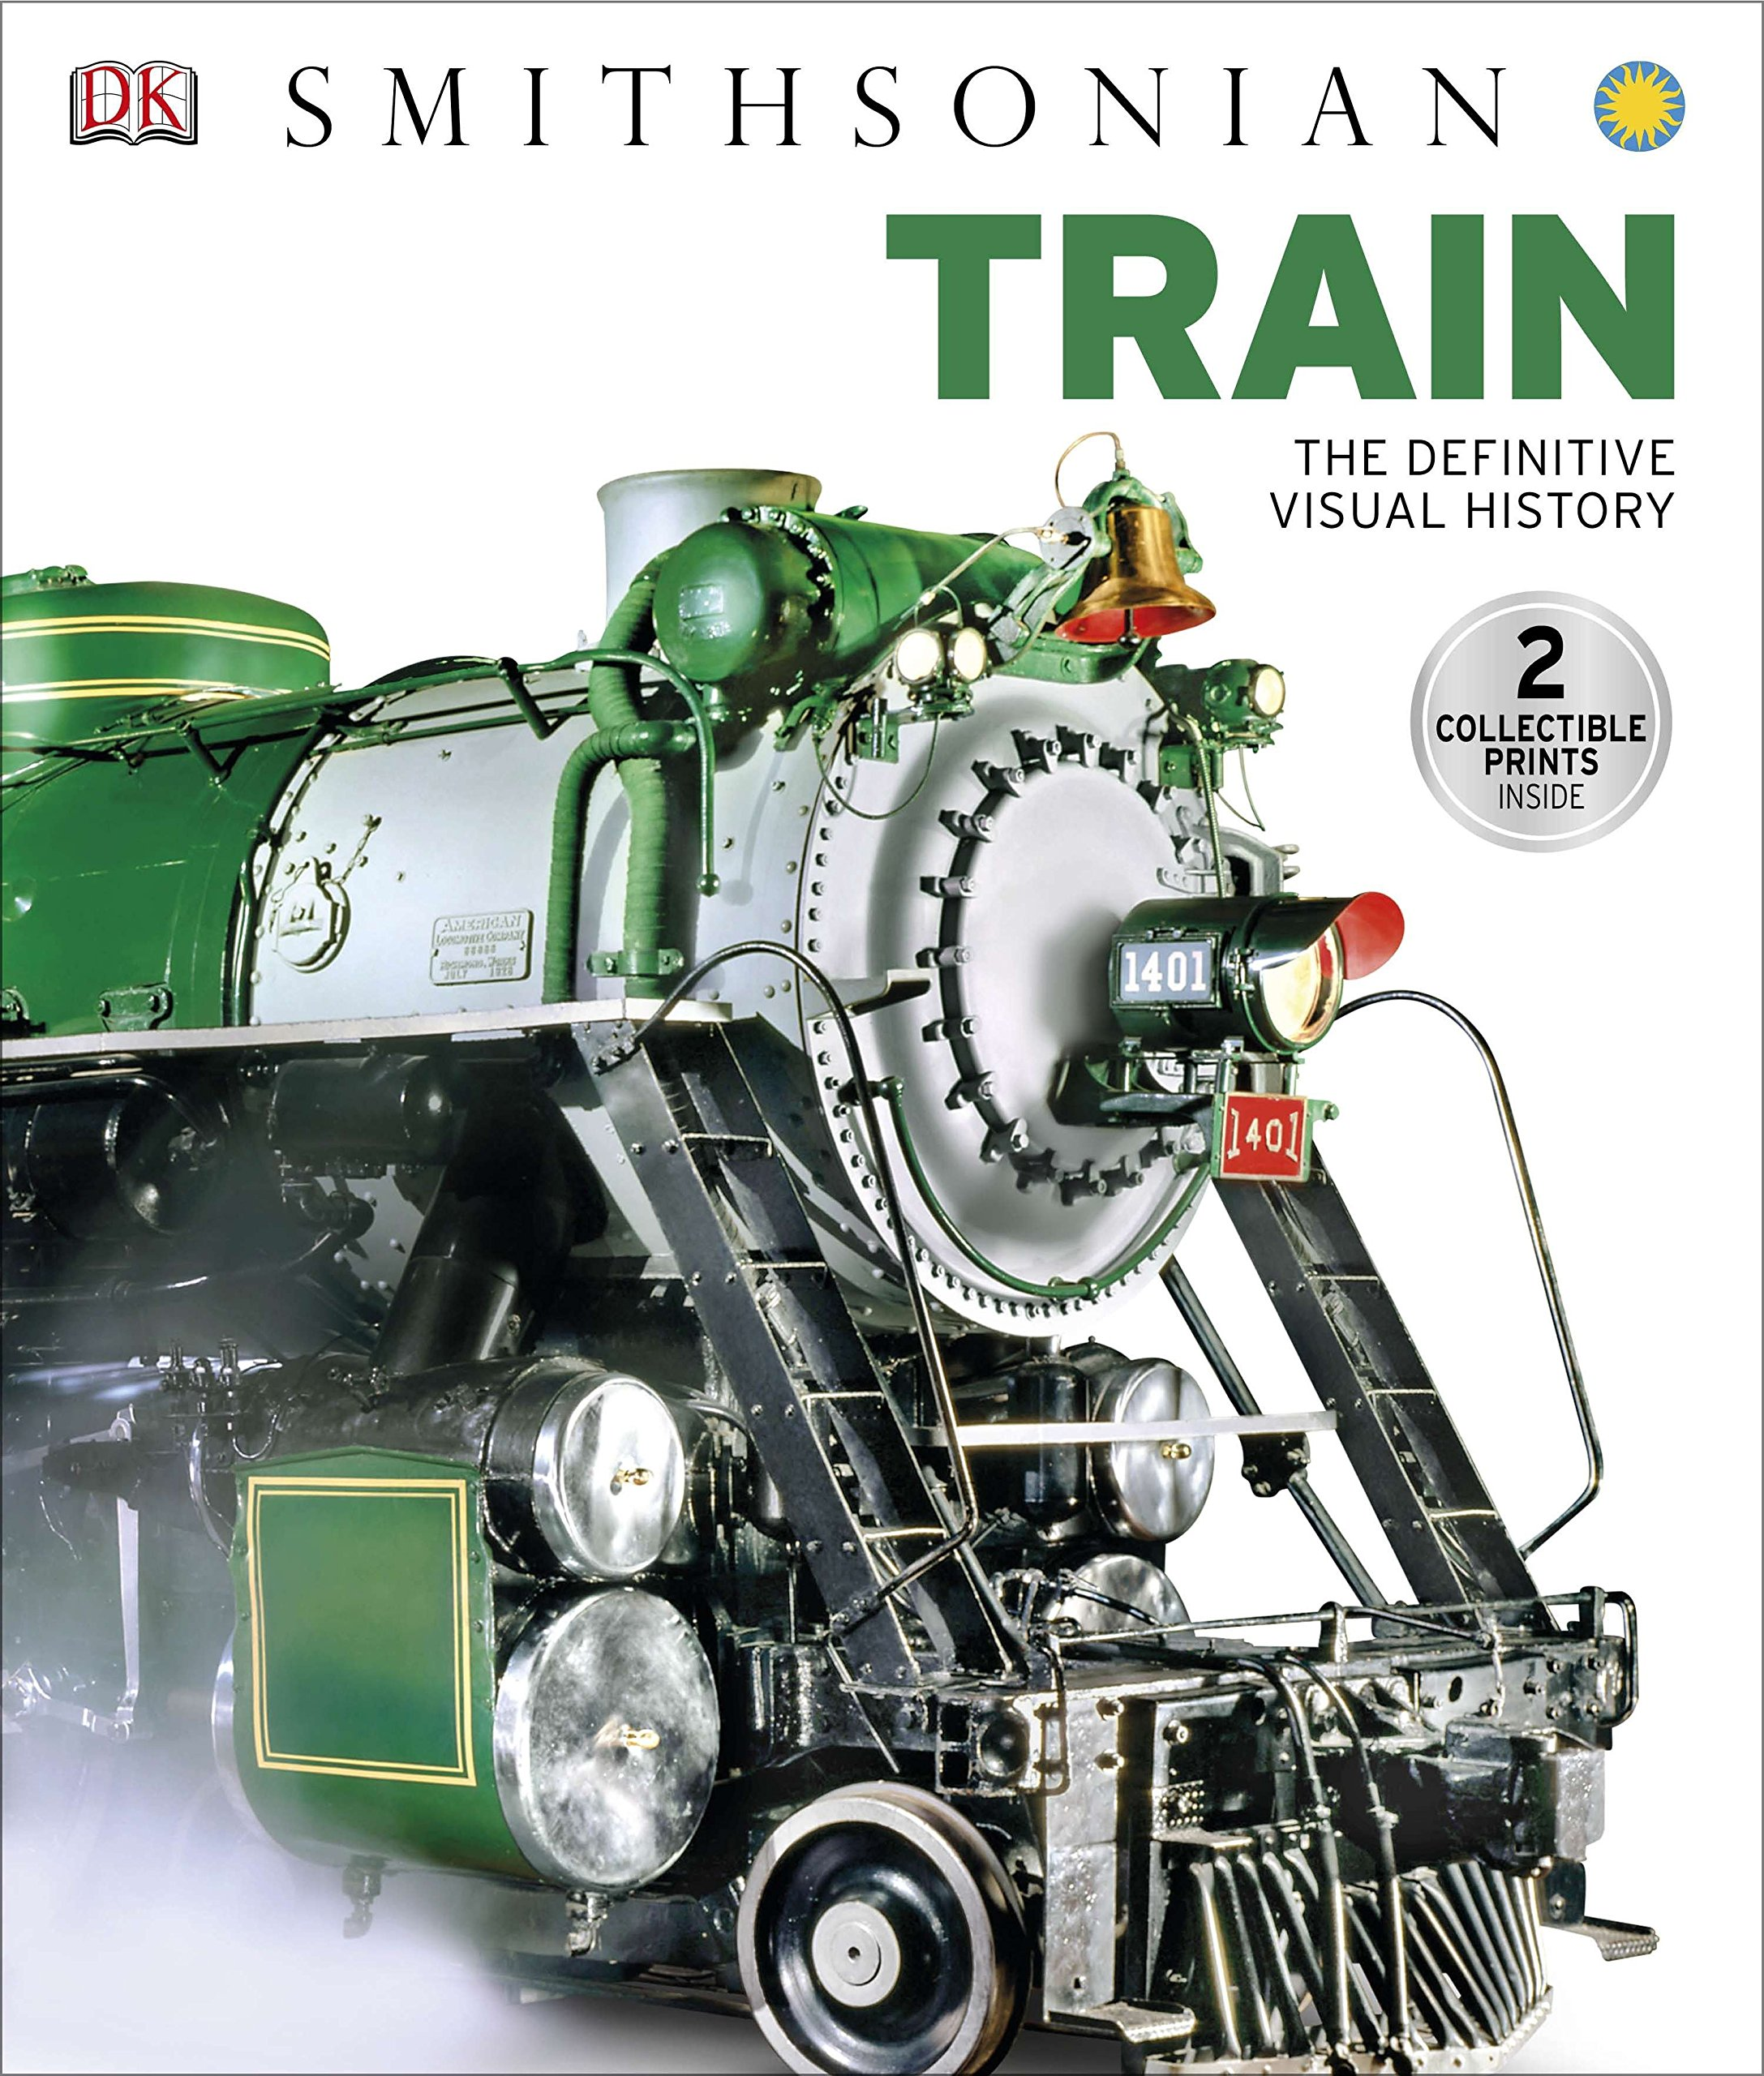 Top 10 Best smithsonian engine Reviews